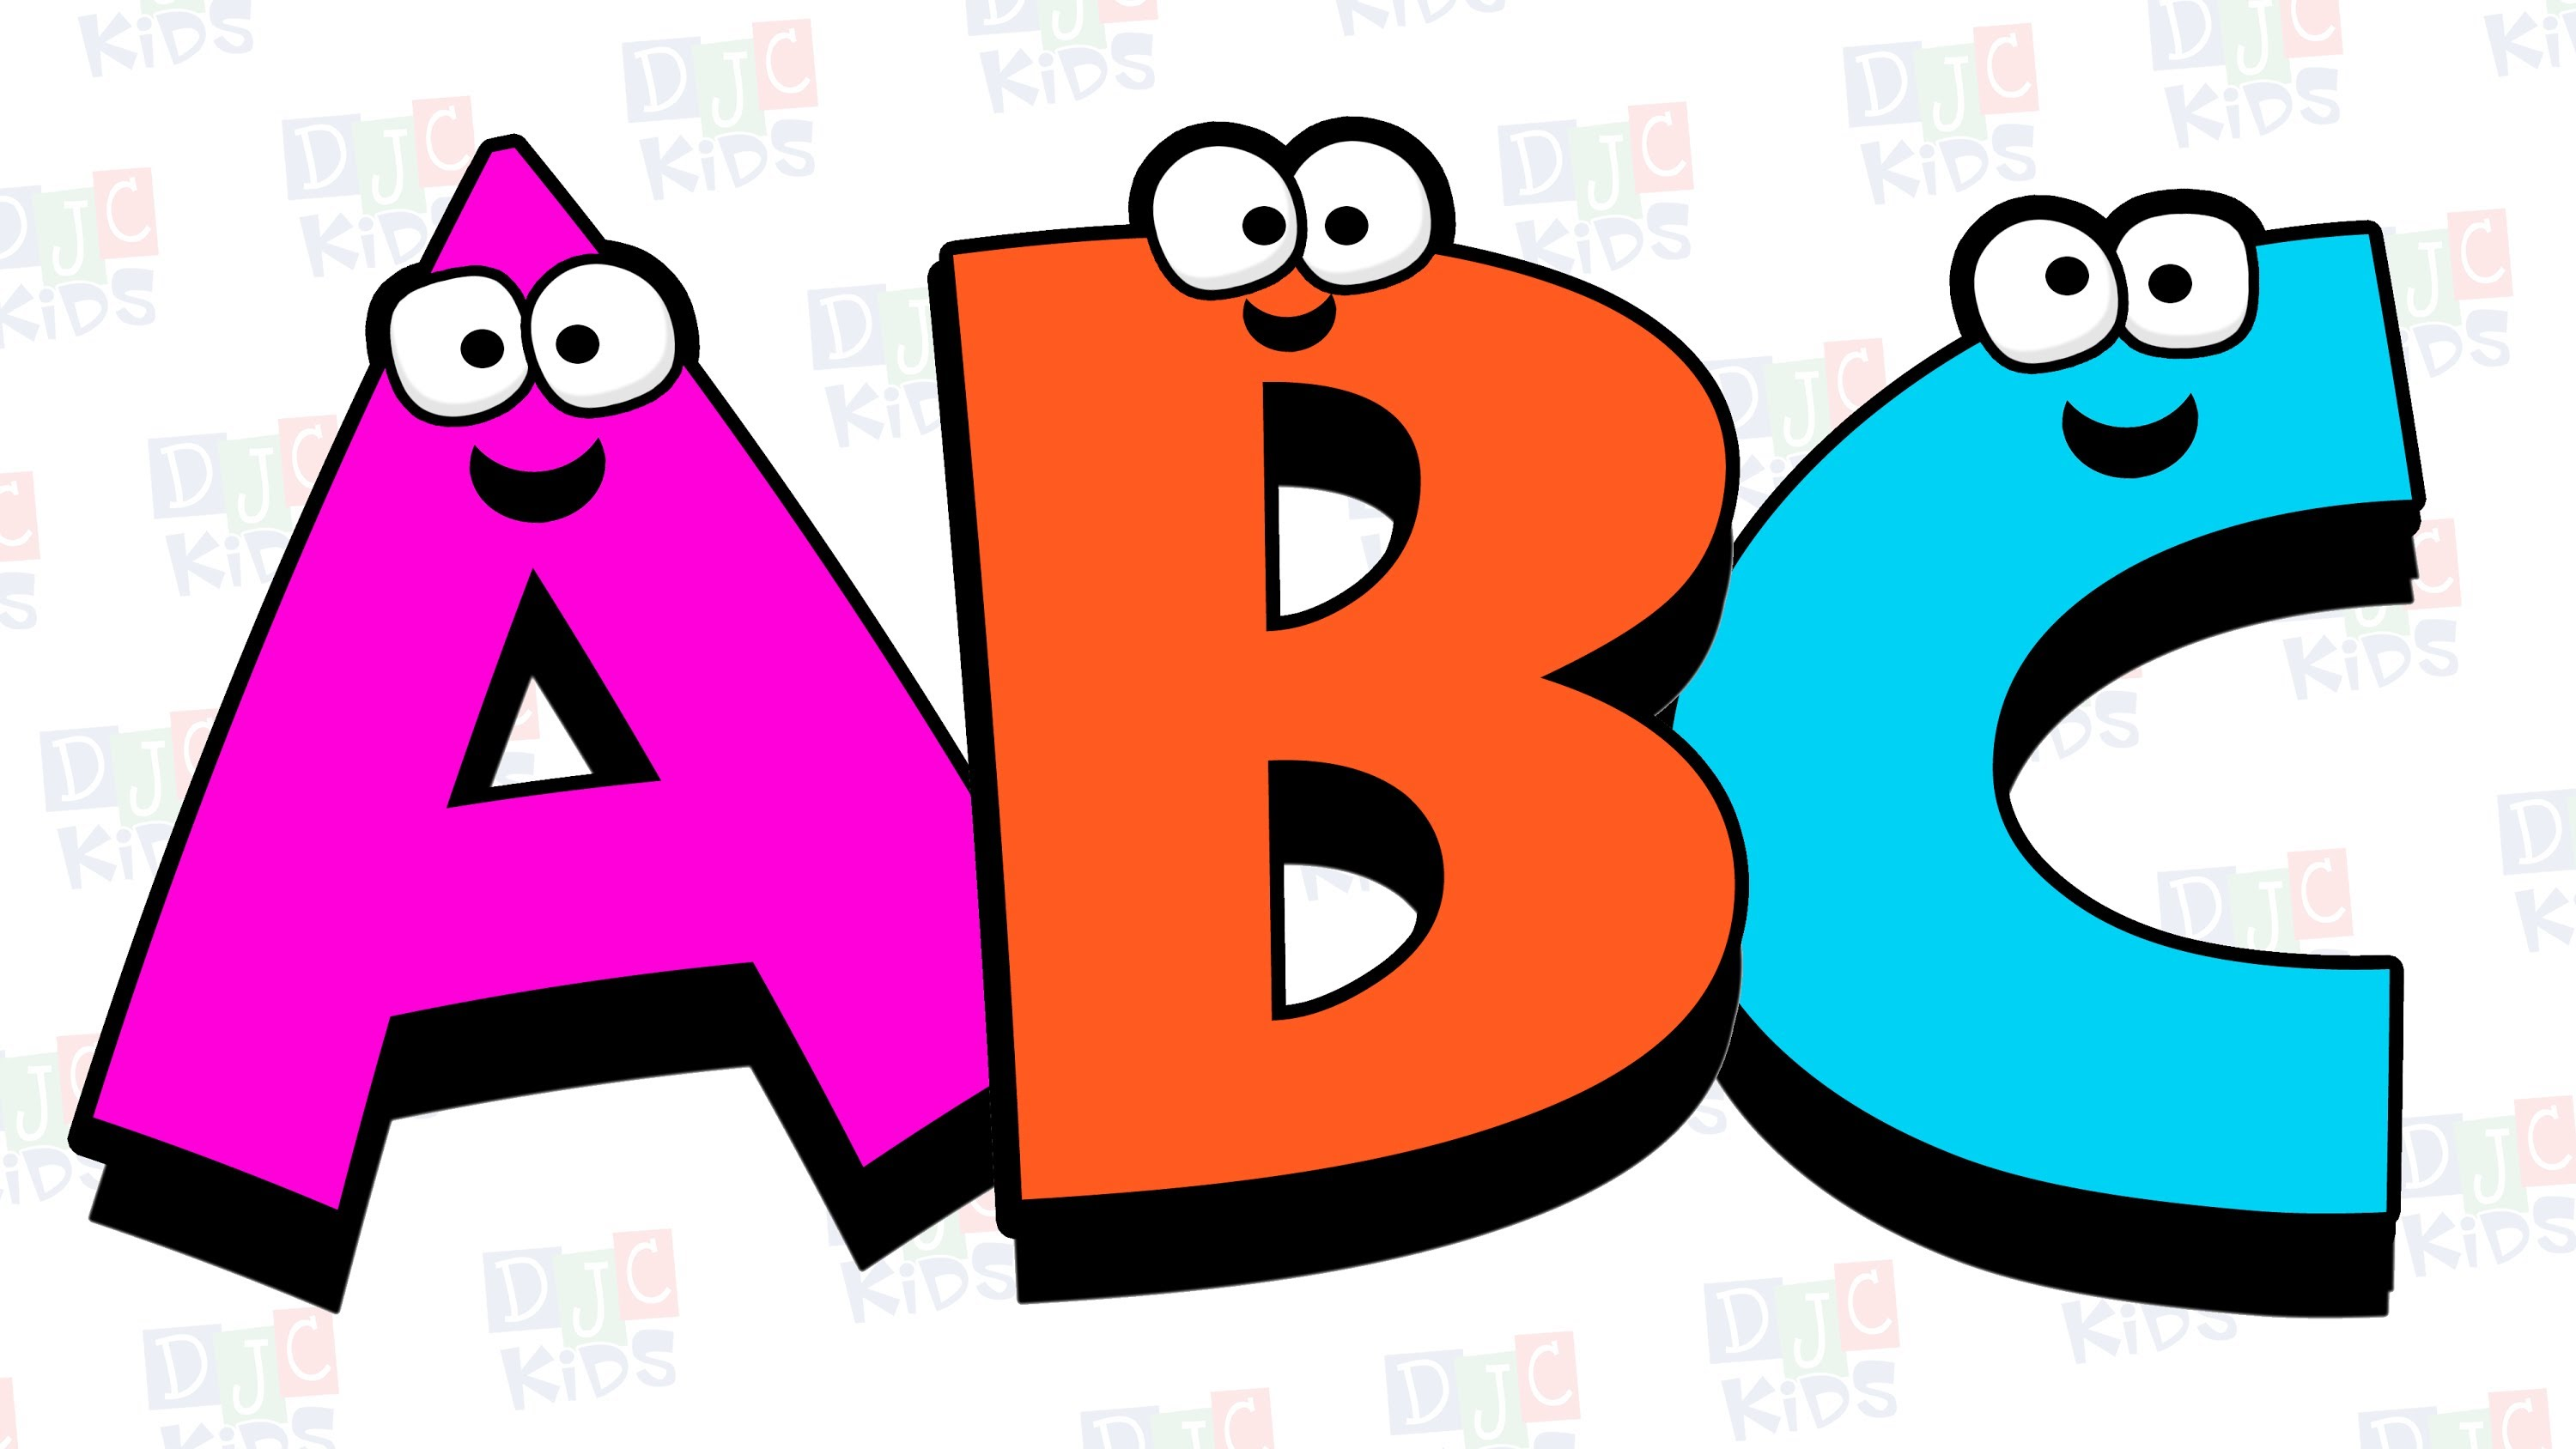 Abc clipart preschool, Abc preschool Transparent FREE for.